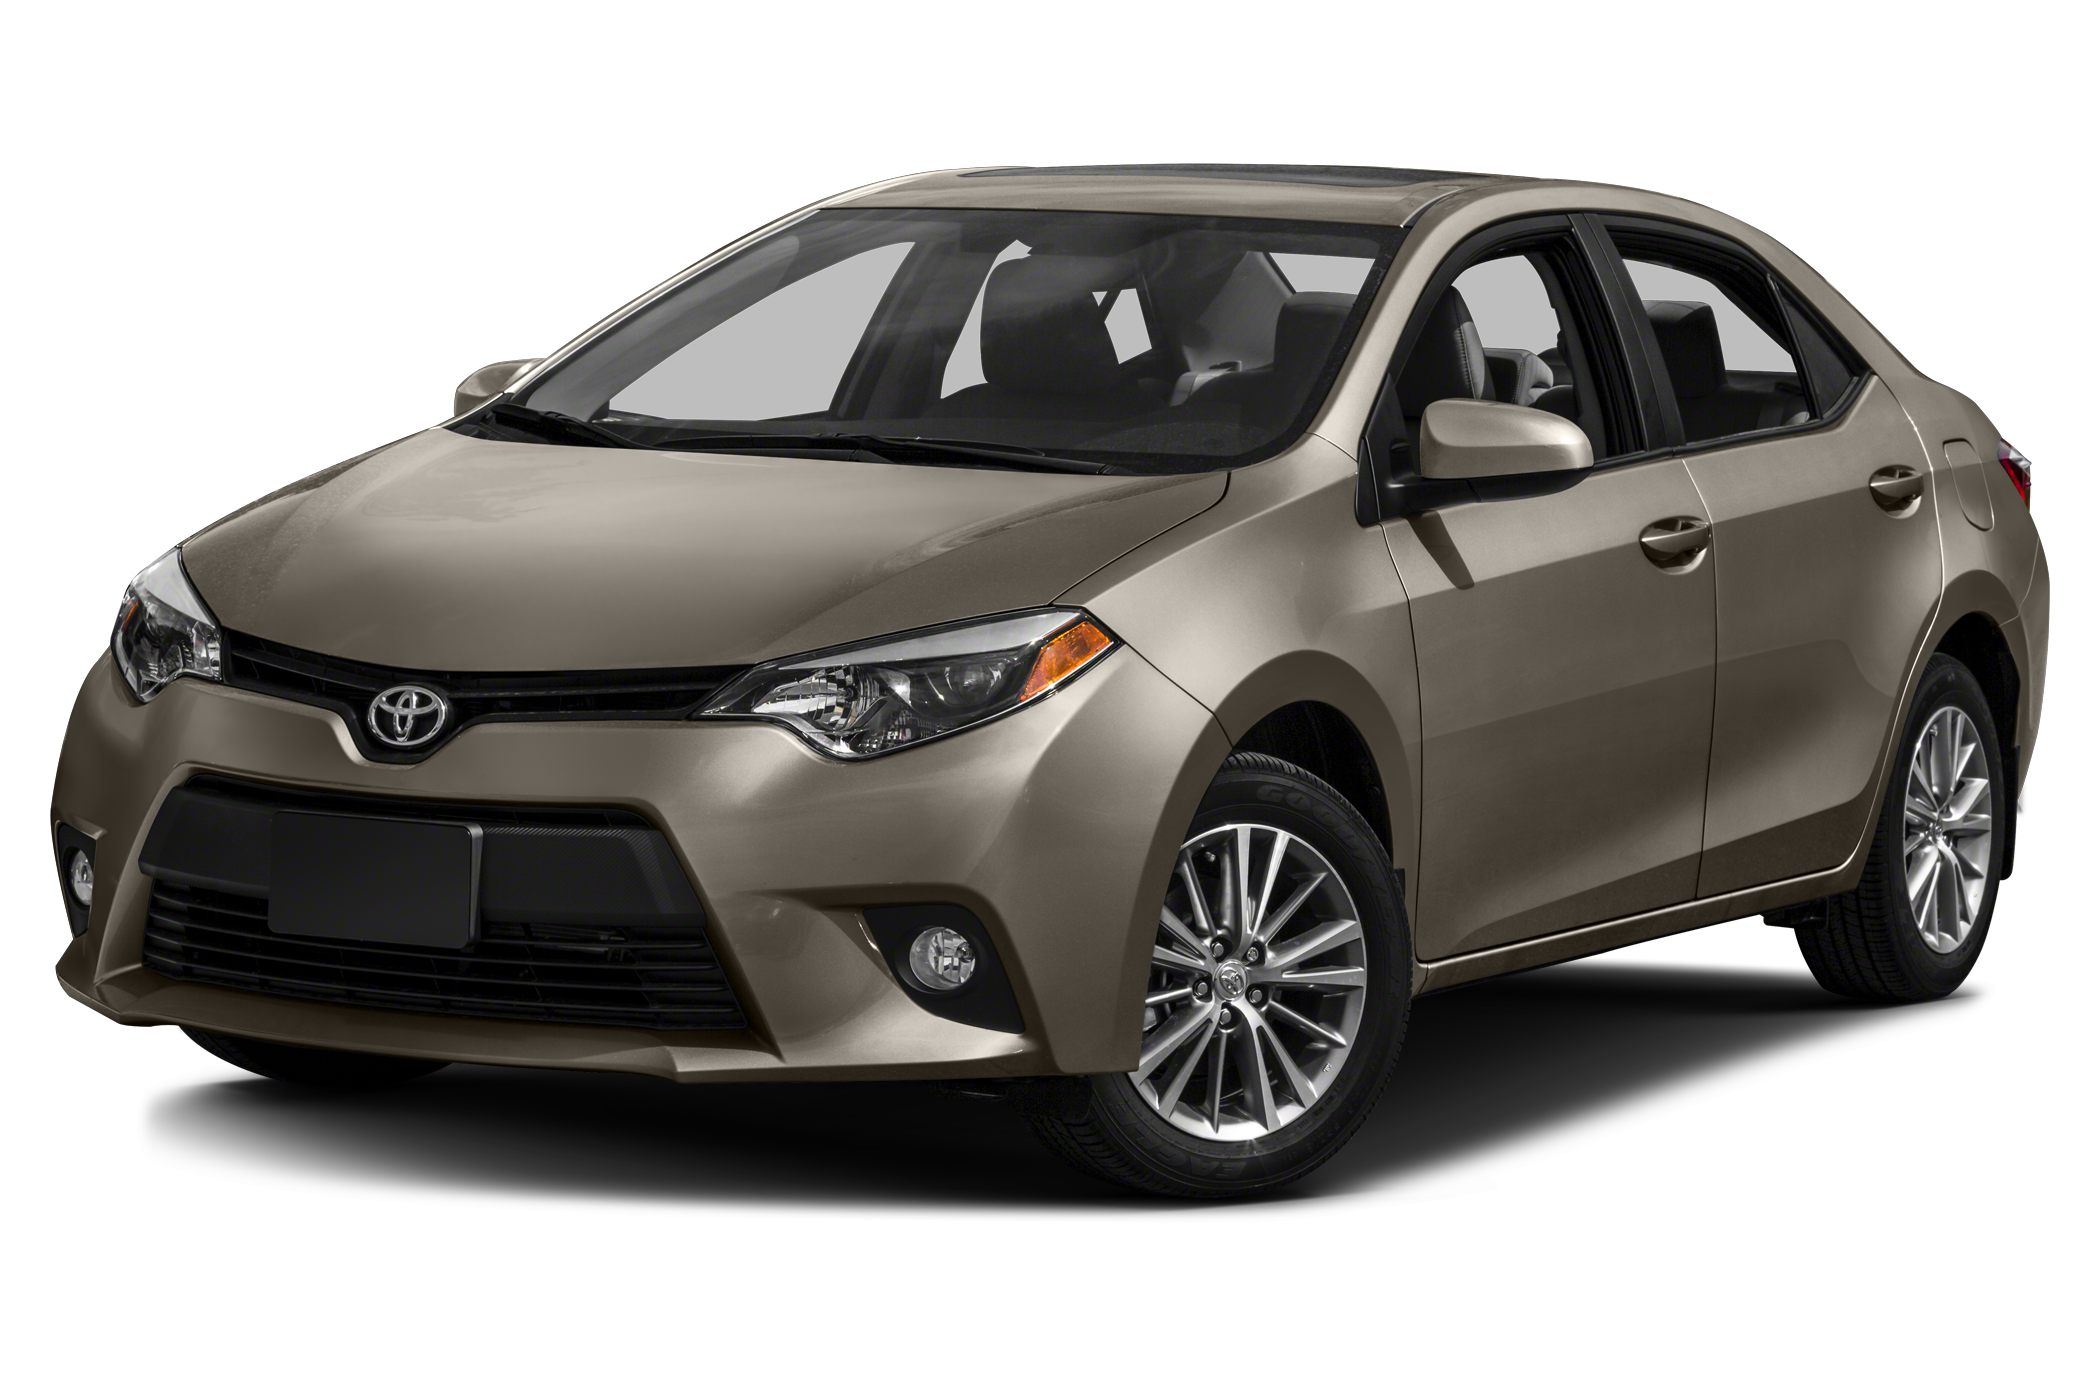 2015 Toyota Corolla LE Sedan for sale in Nicholasville for $17,500 with 3 miles.